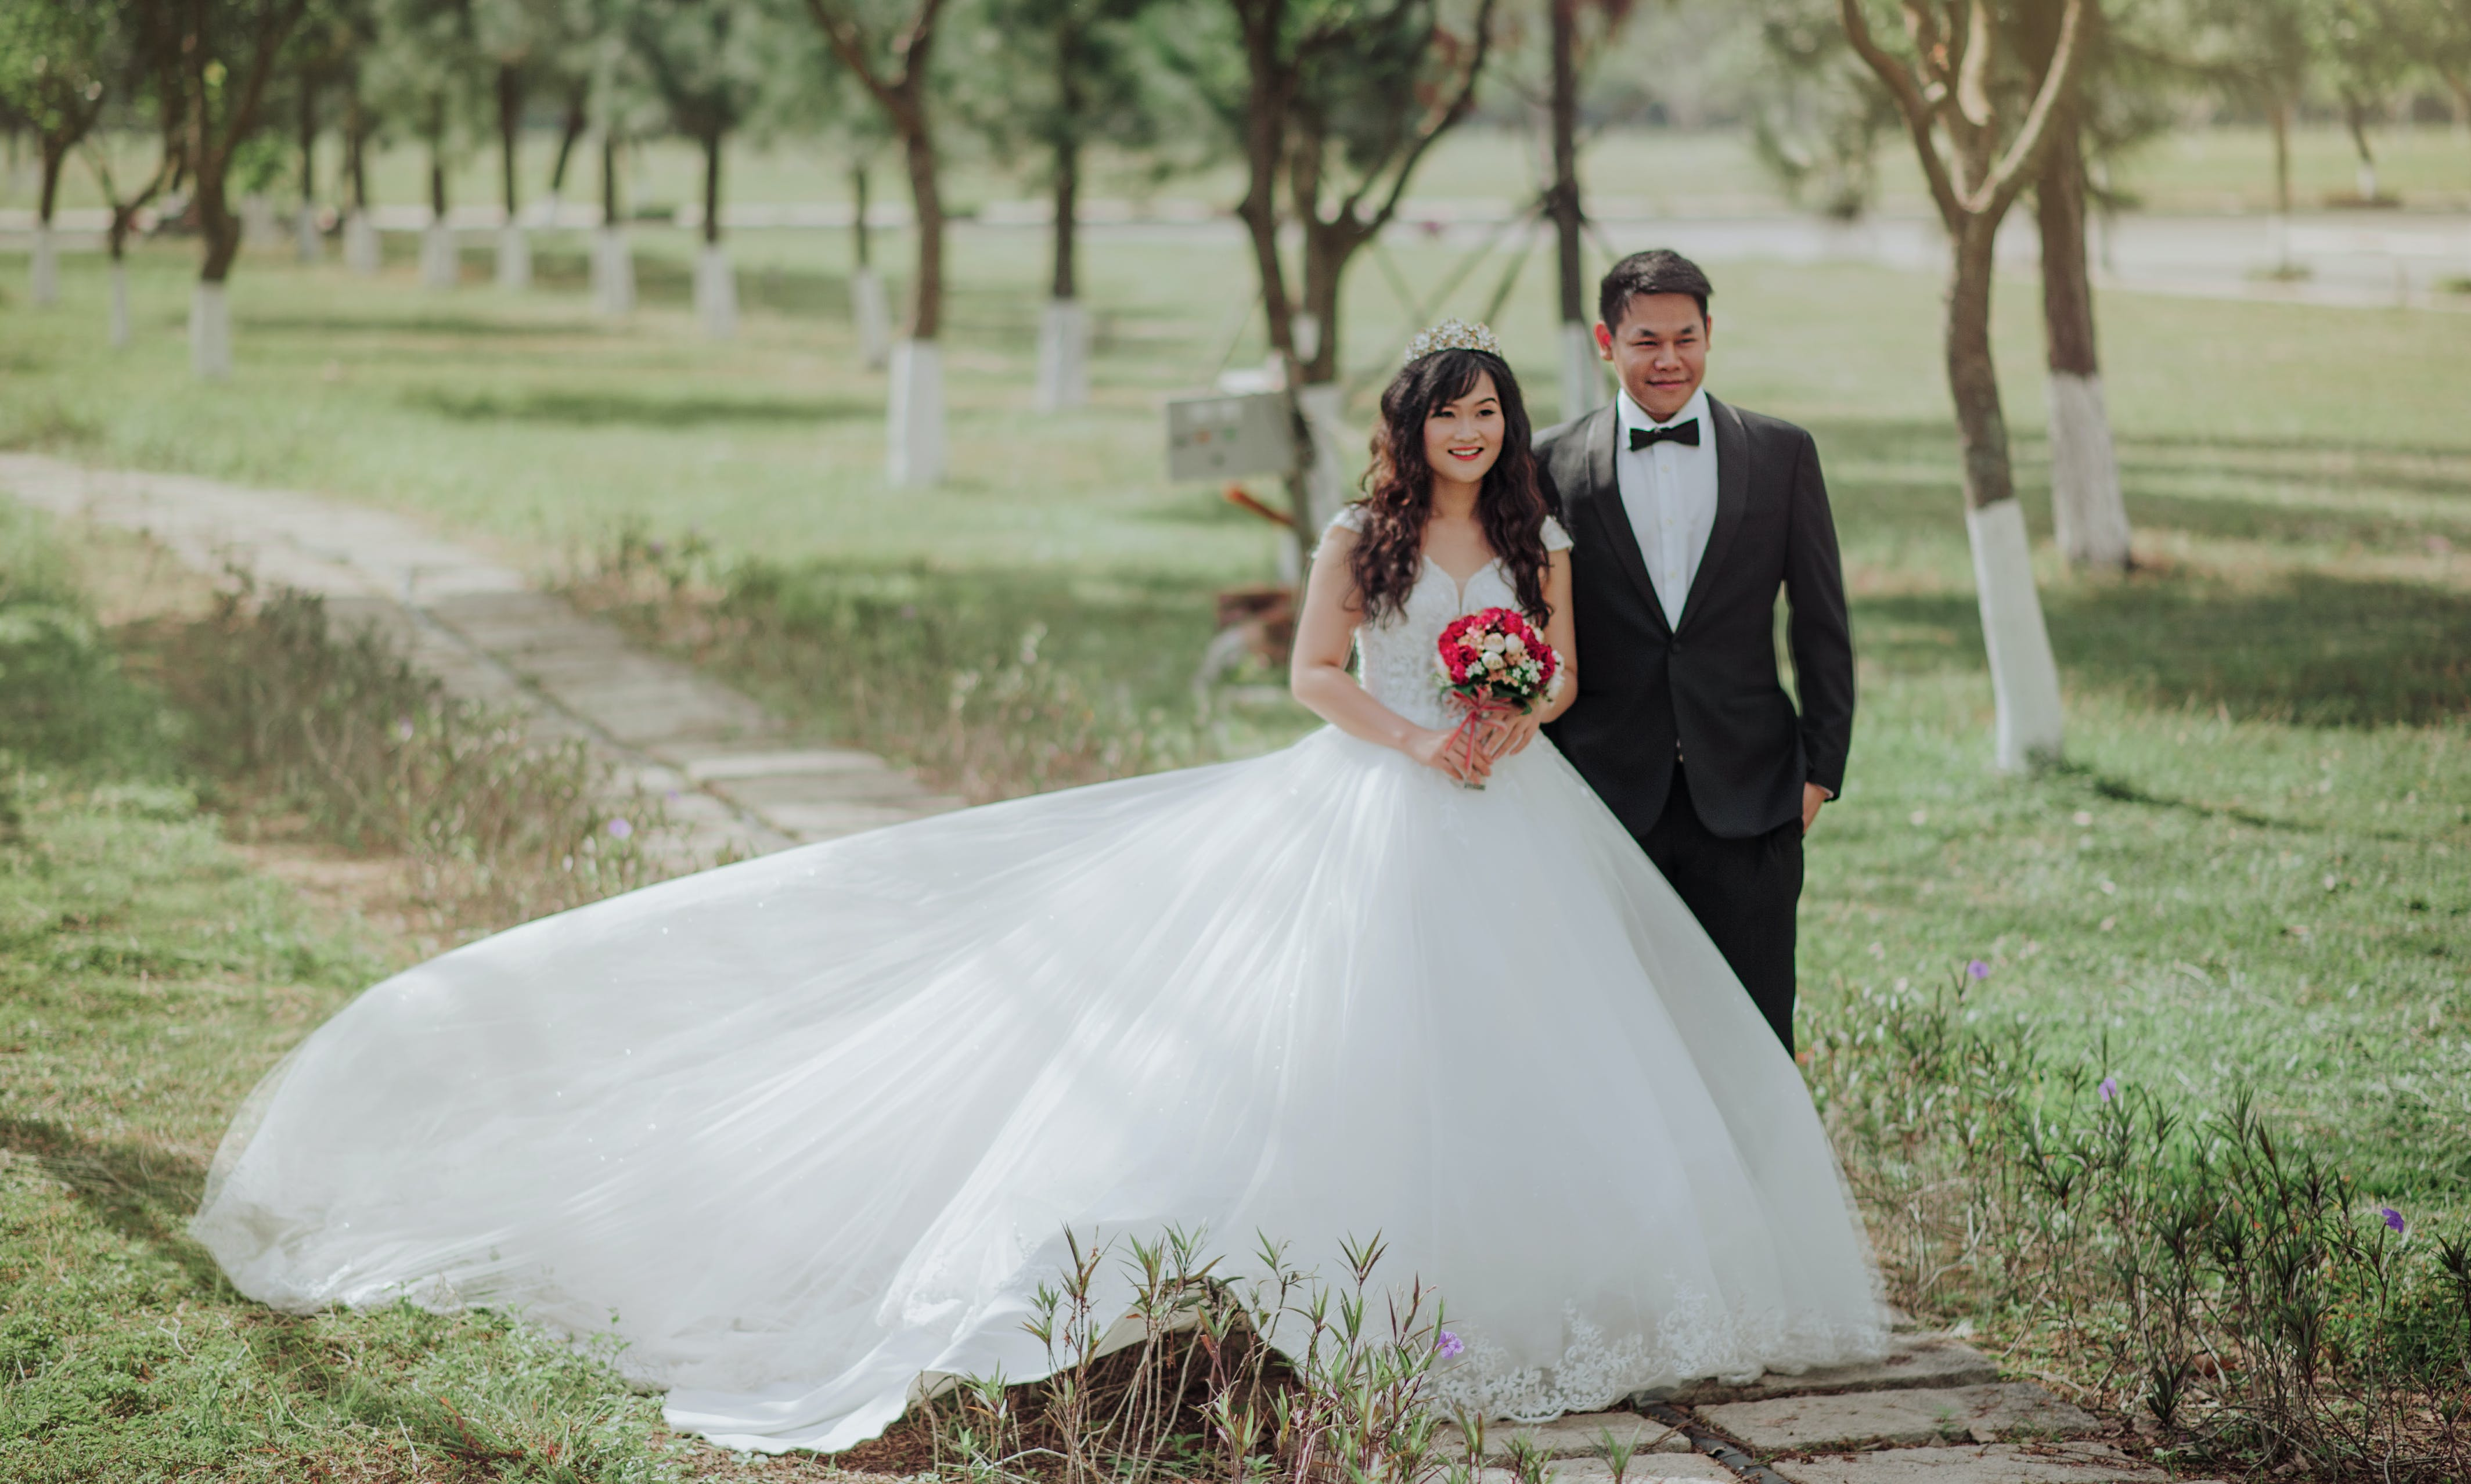 Bride and Groom Photo on Park